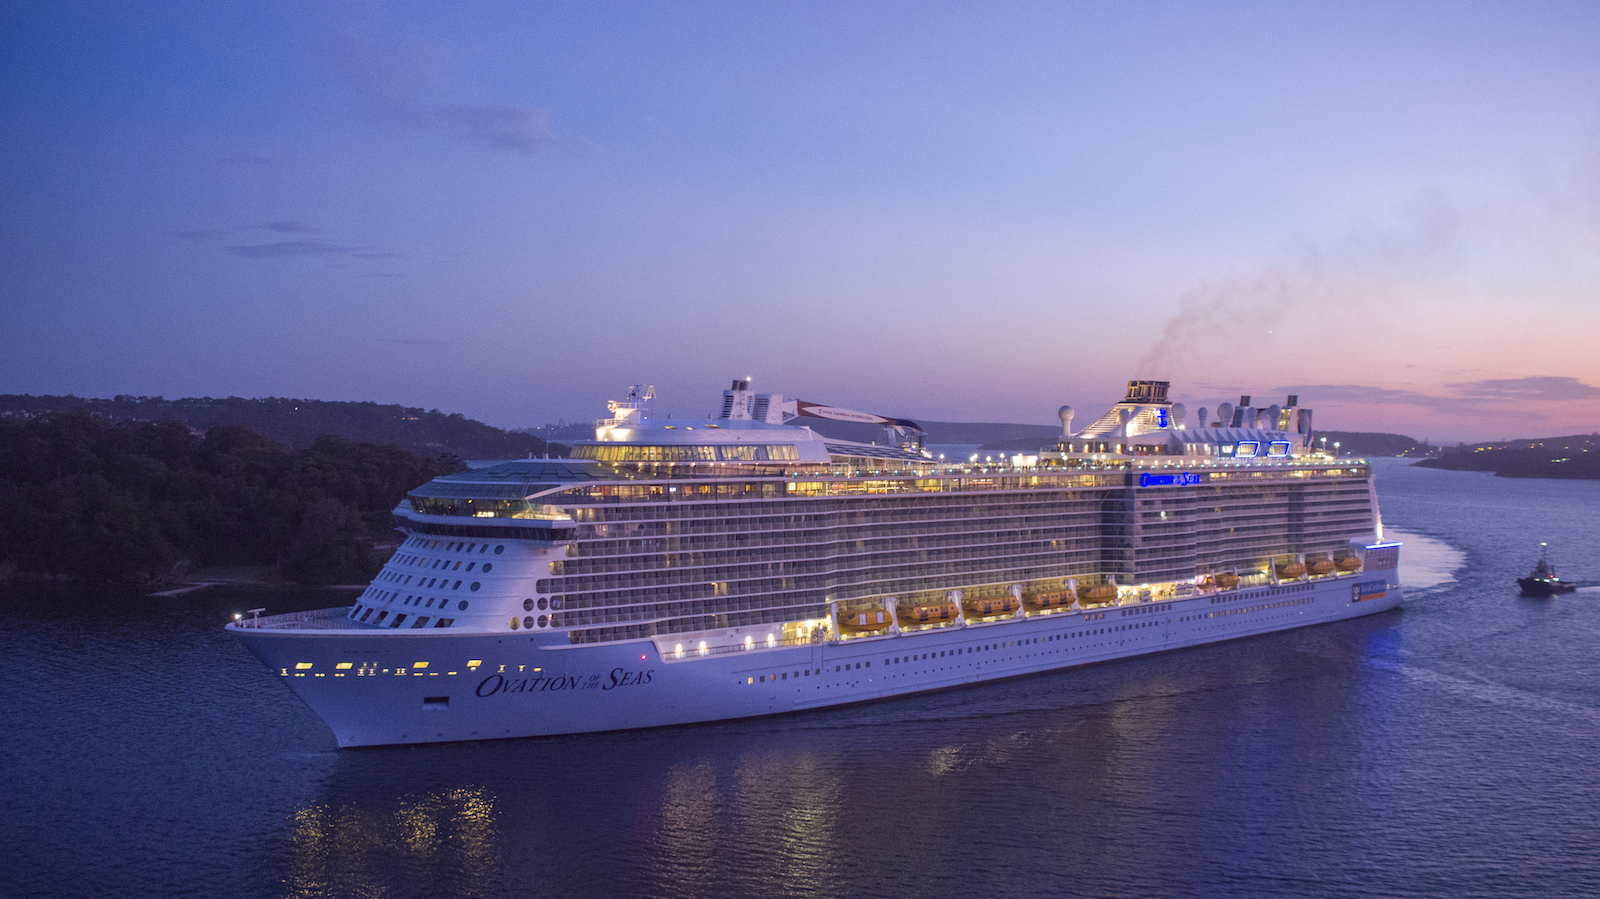 SHIP PROFILE: Ovation of the Seas